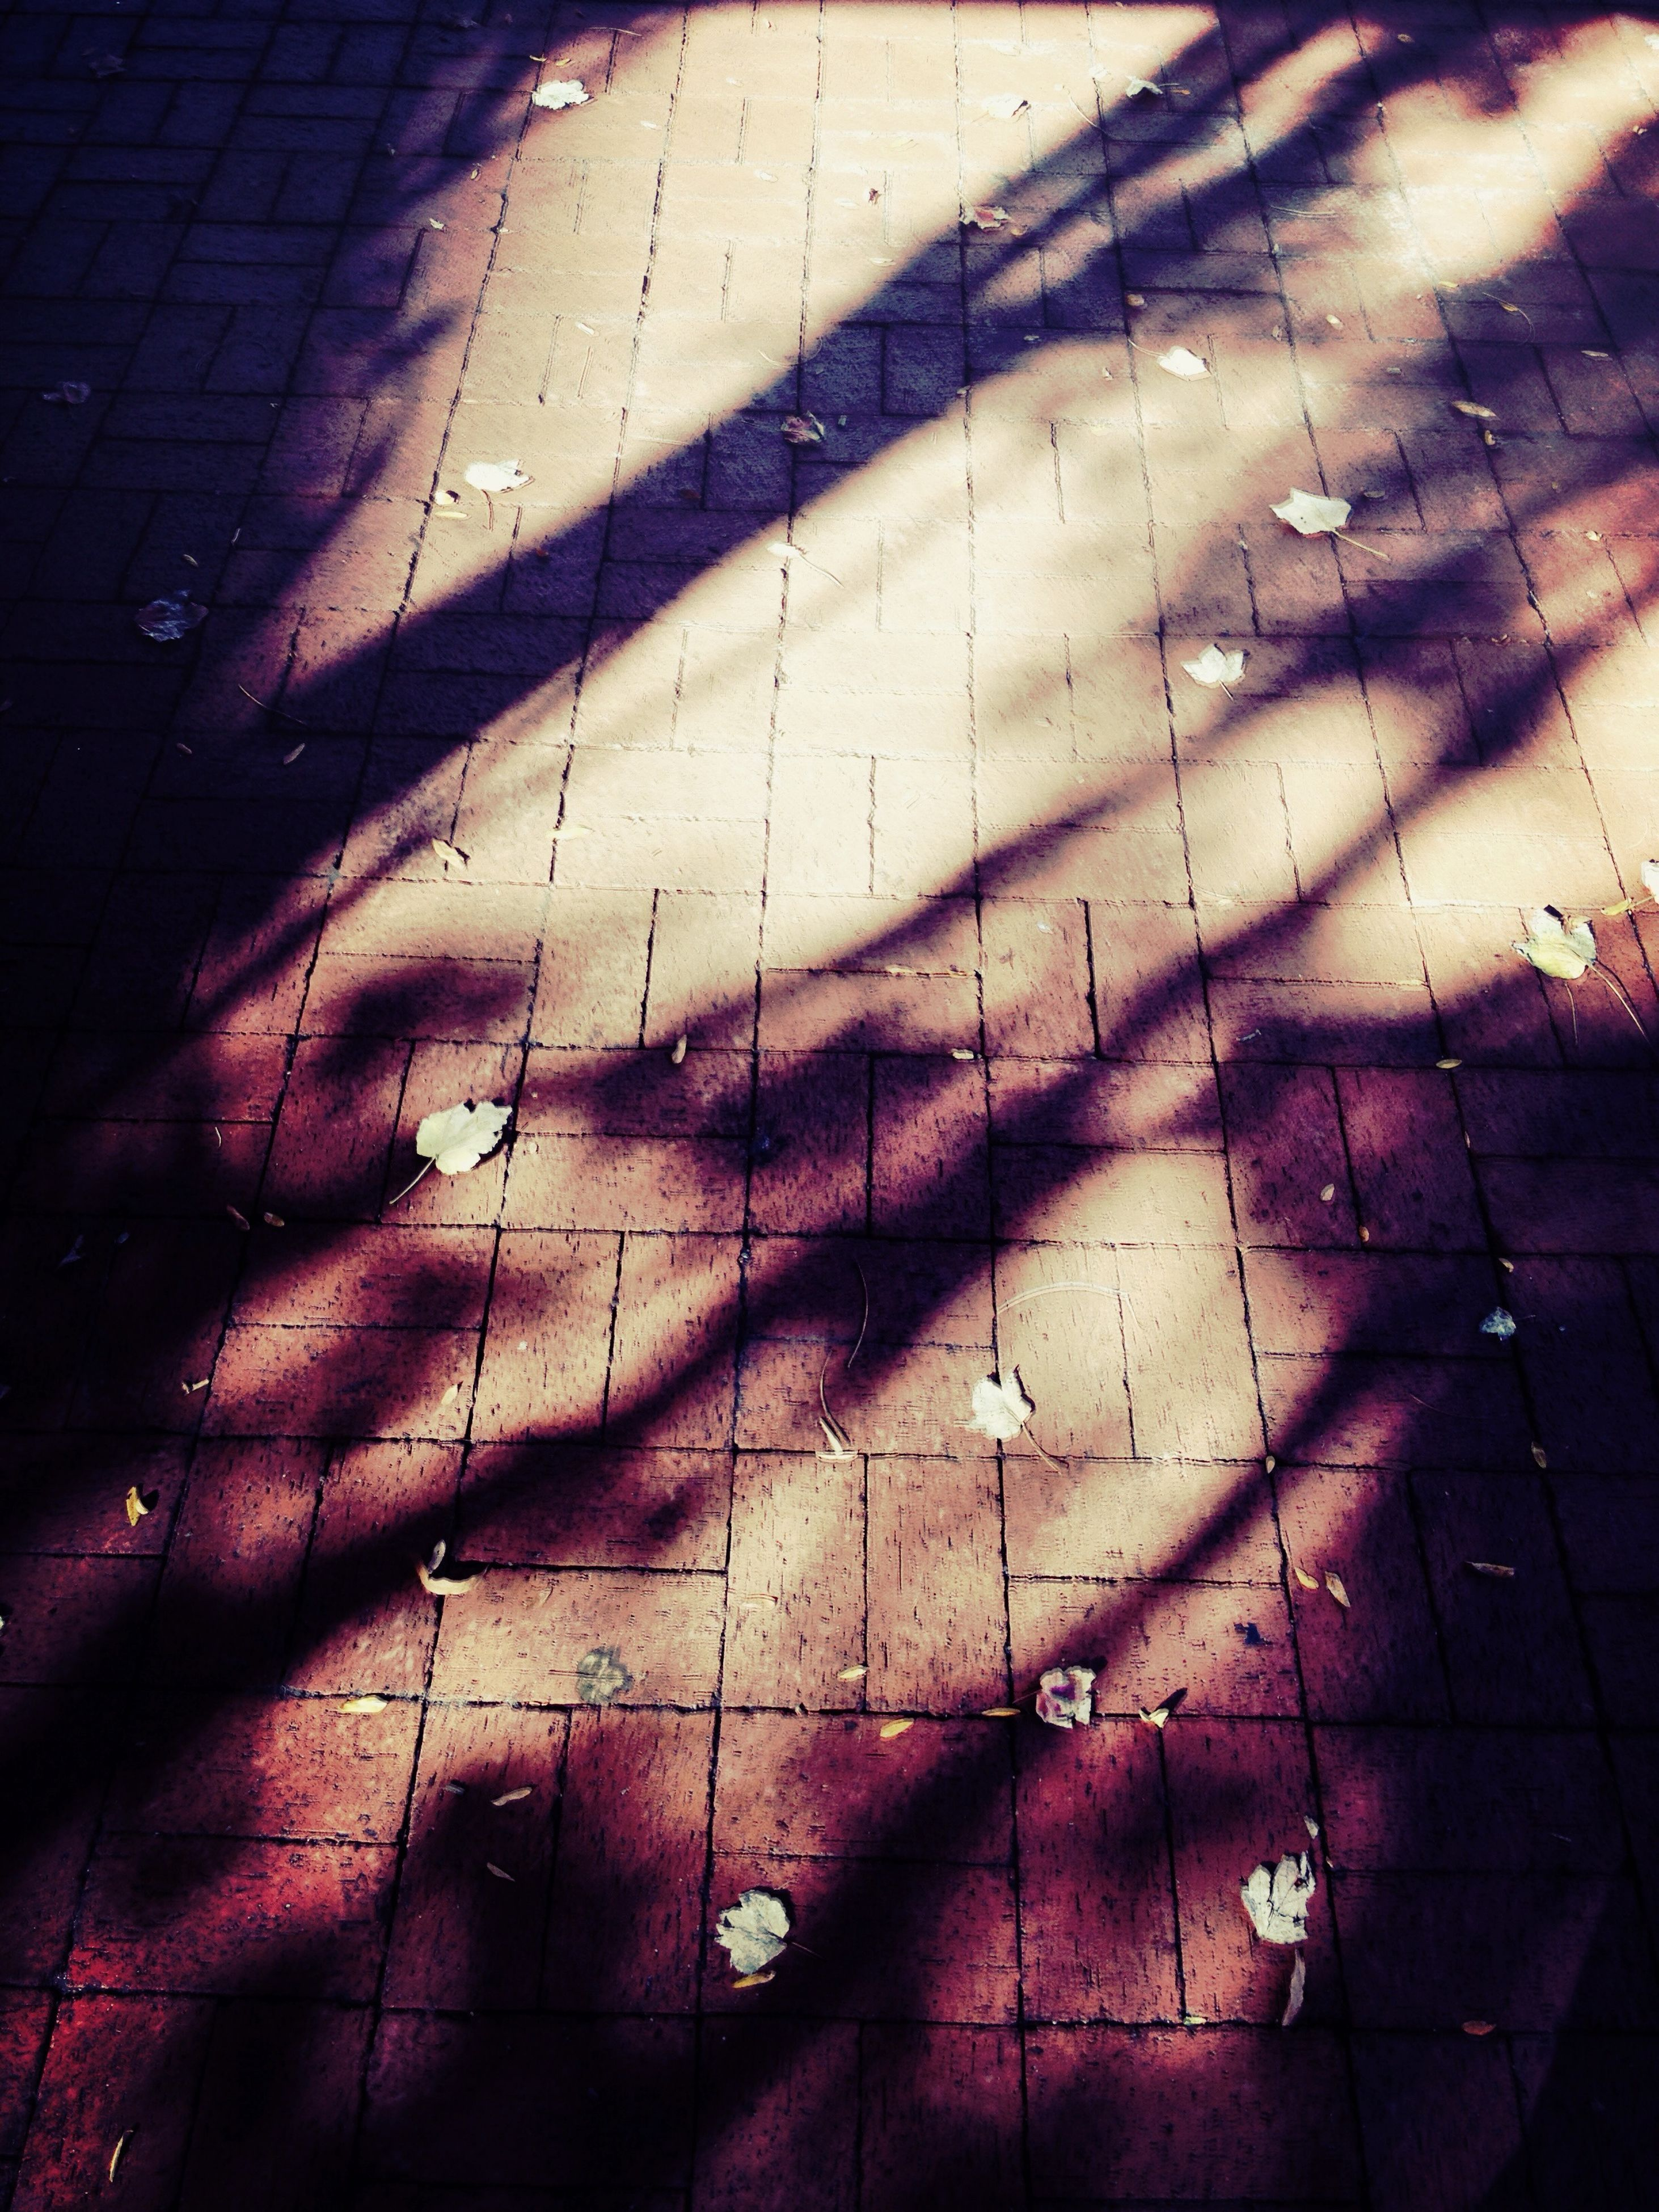 high angle view, shadow, wall - building feature, full frame, architecture, built structure, backgrounds, indoors, sunlight, building exterior, street, textured, no people, pattern, wall, day, brick wall, flooring, damaged